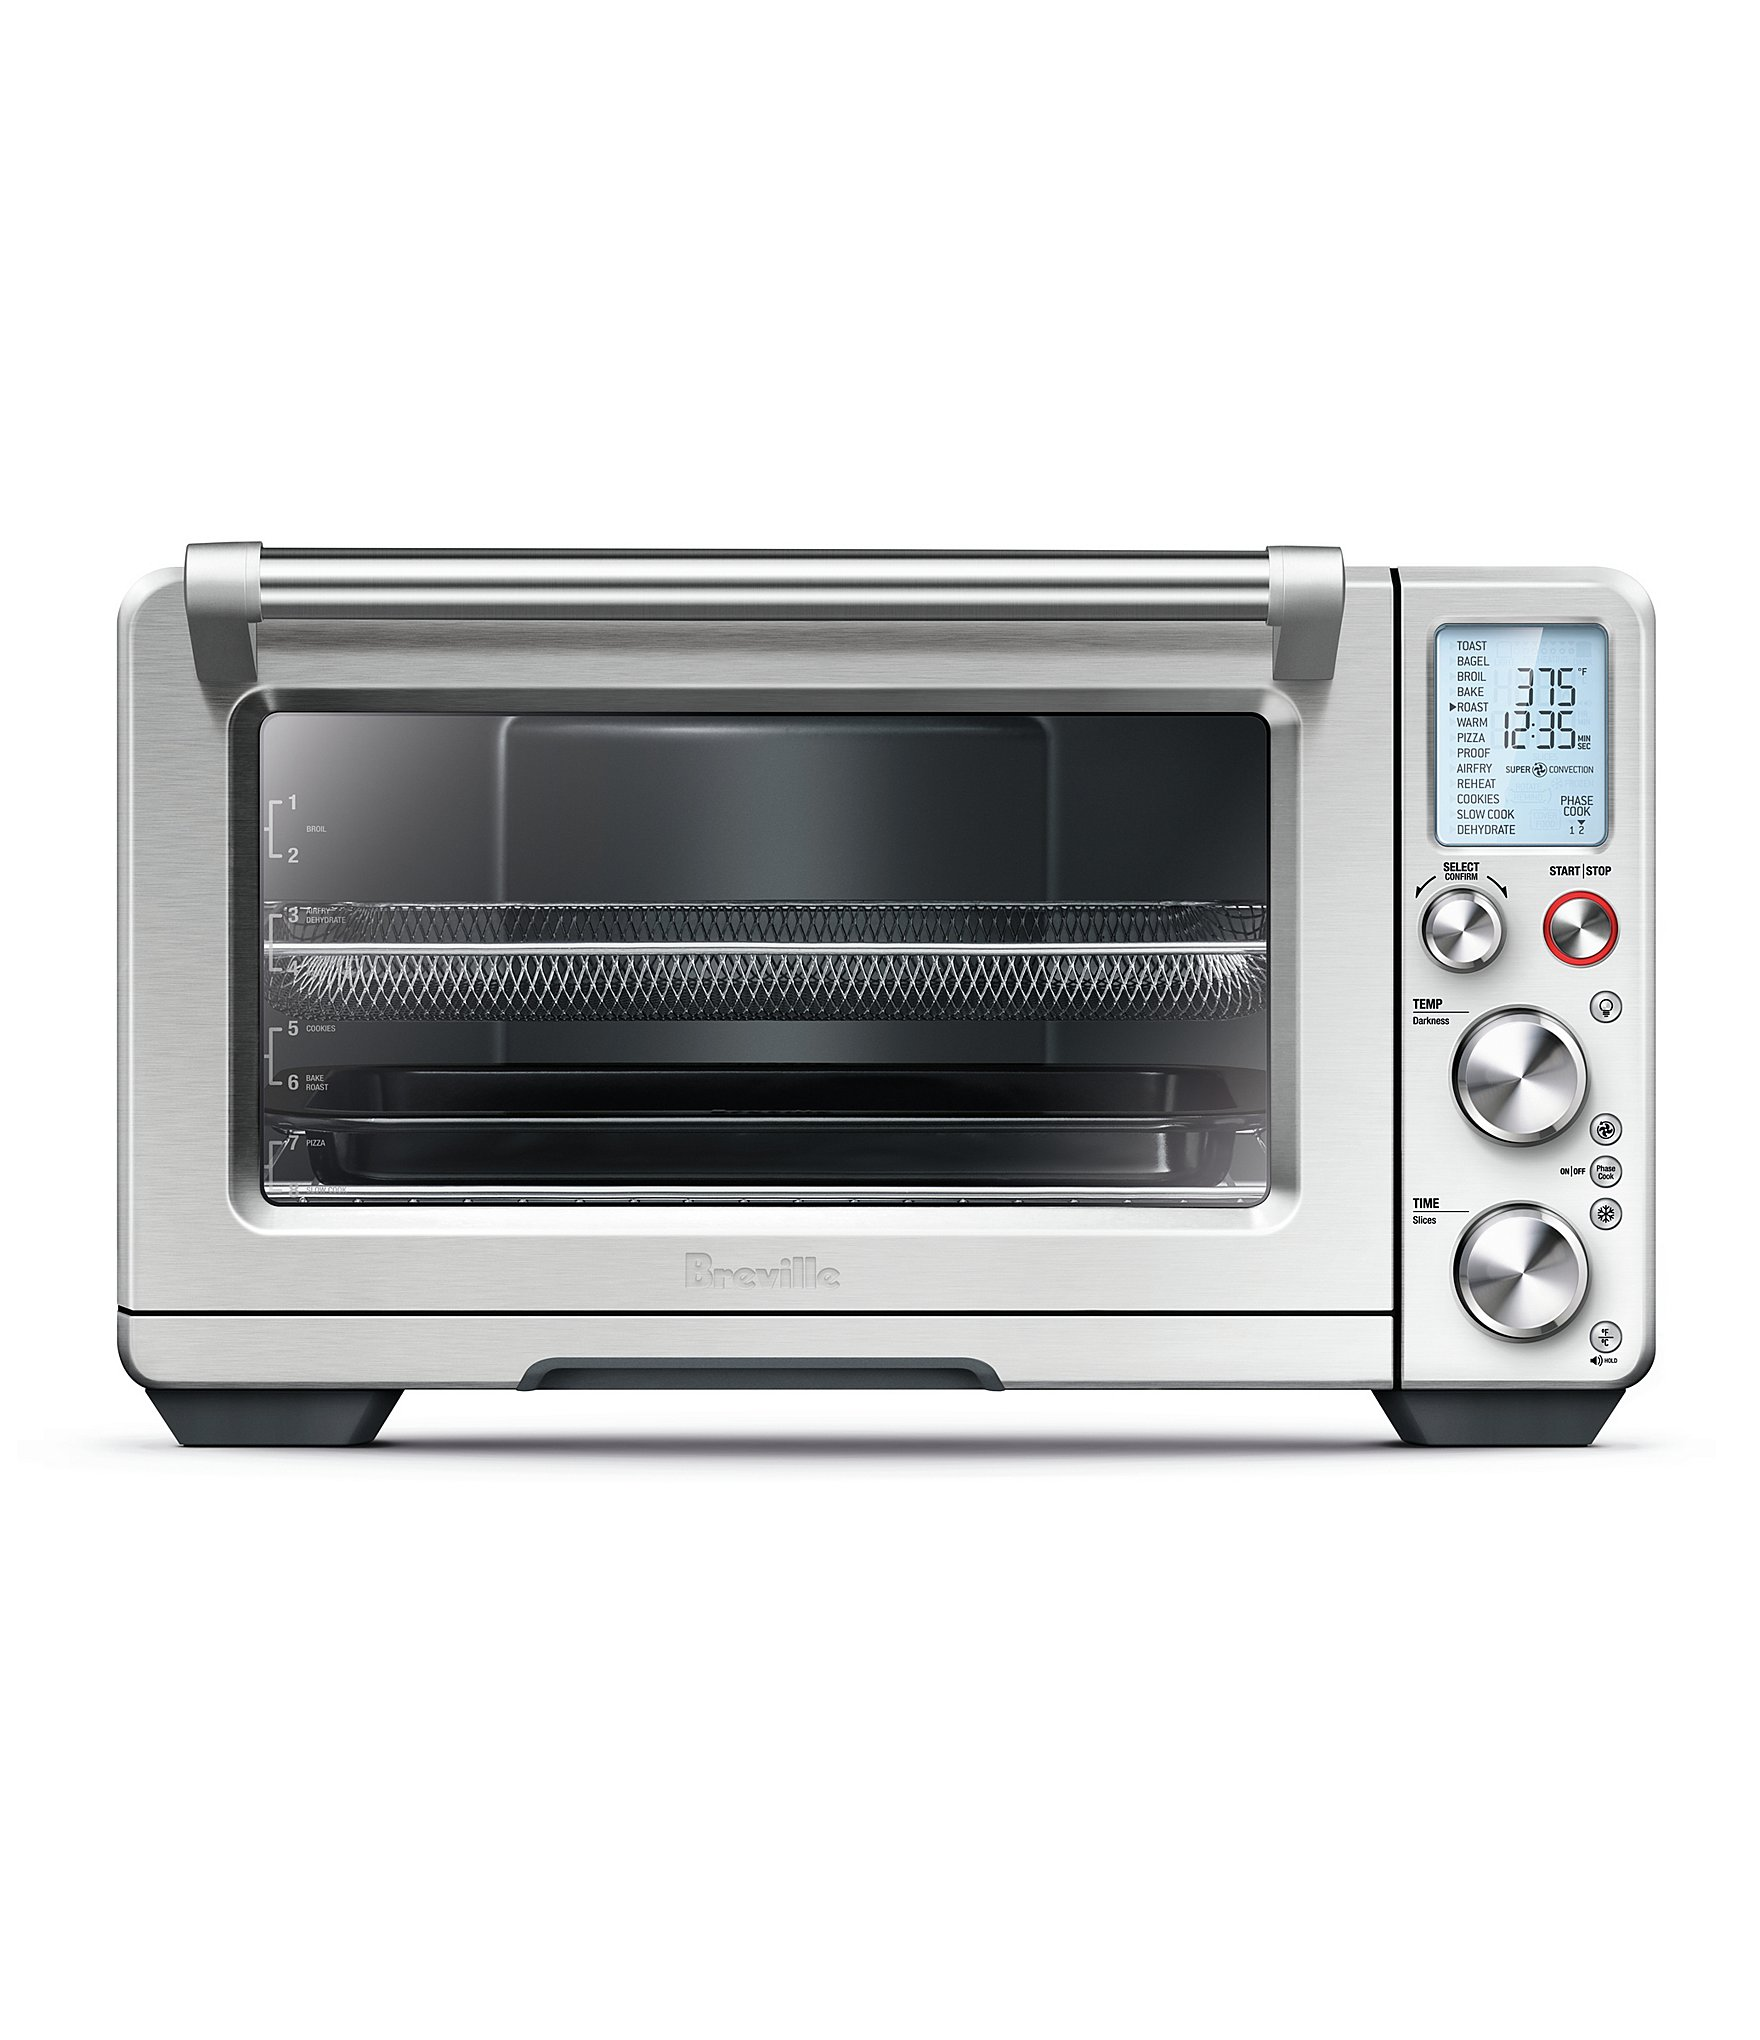 Breville Smart Oven Air 174 Convection 13 Functions With Air